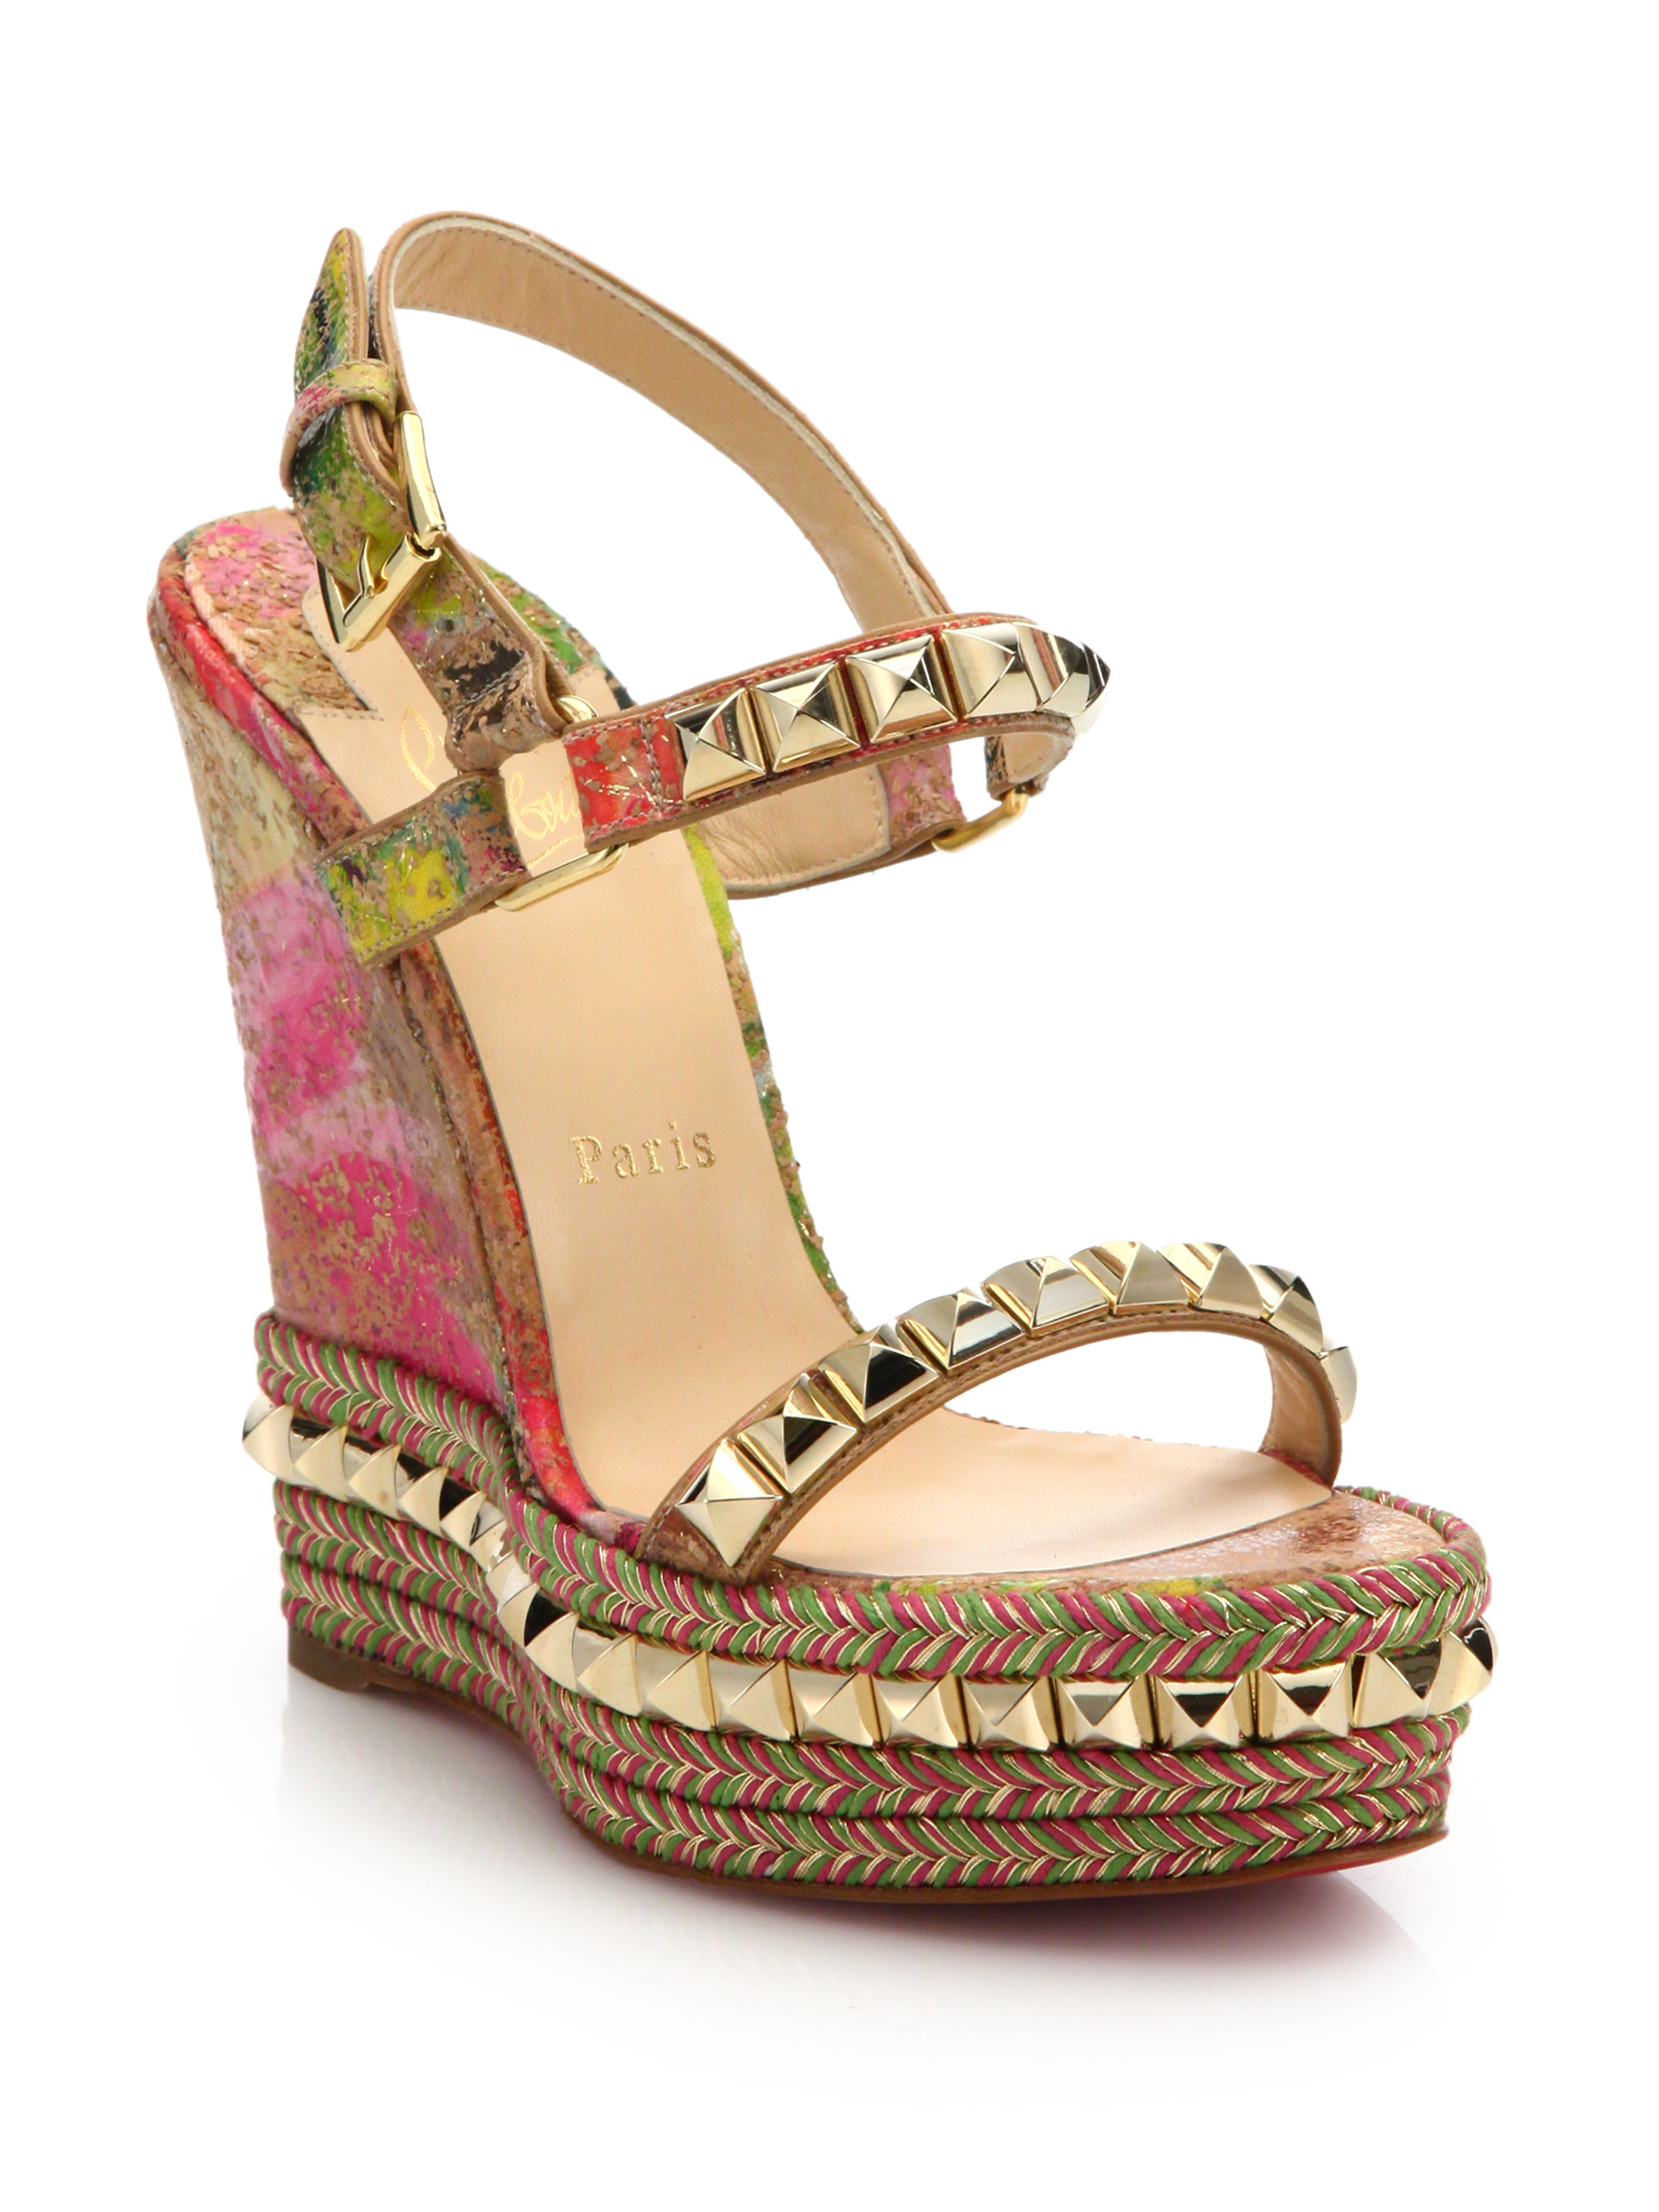 16a9527e5ce1 Lyst - Christian Louboutin Pyramid-studded Cork Espadrille Wedge Sandals